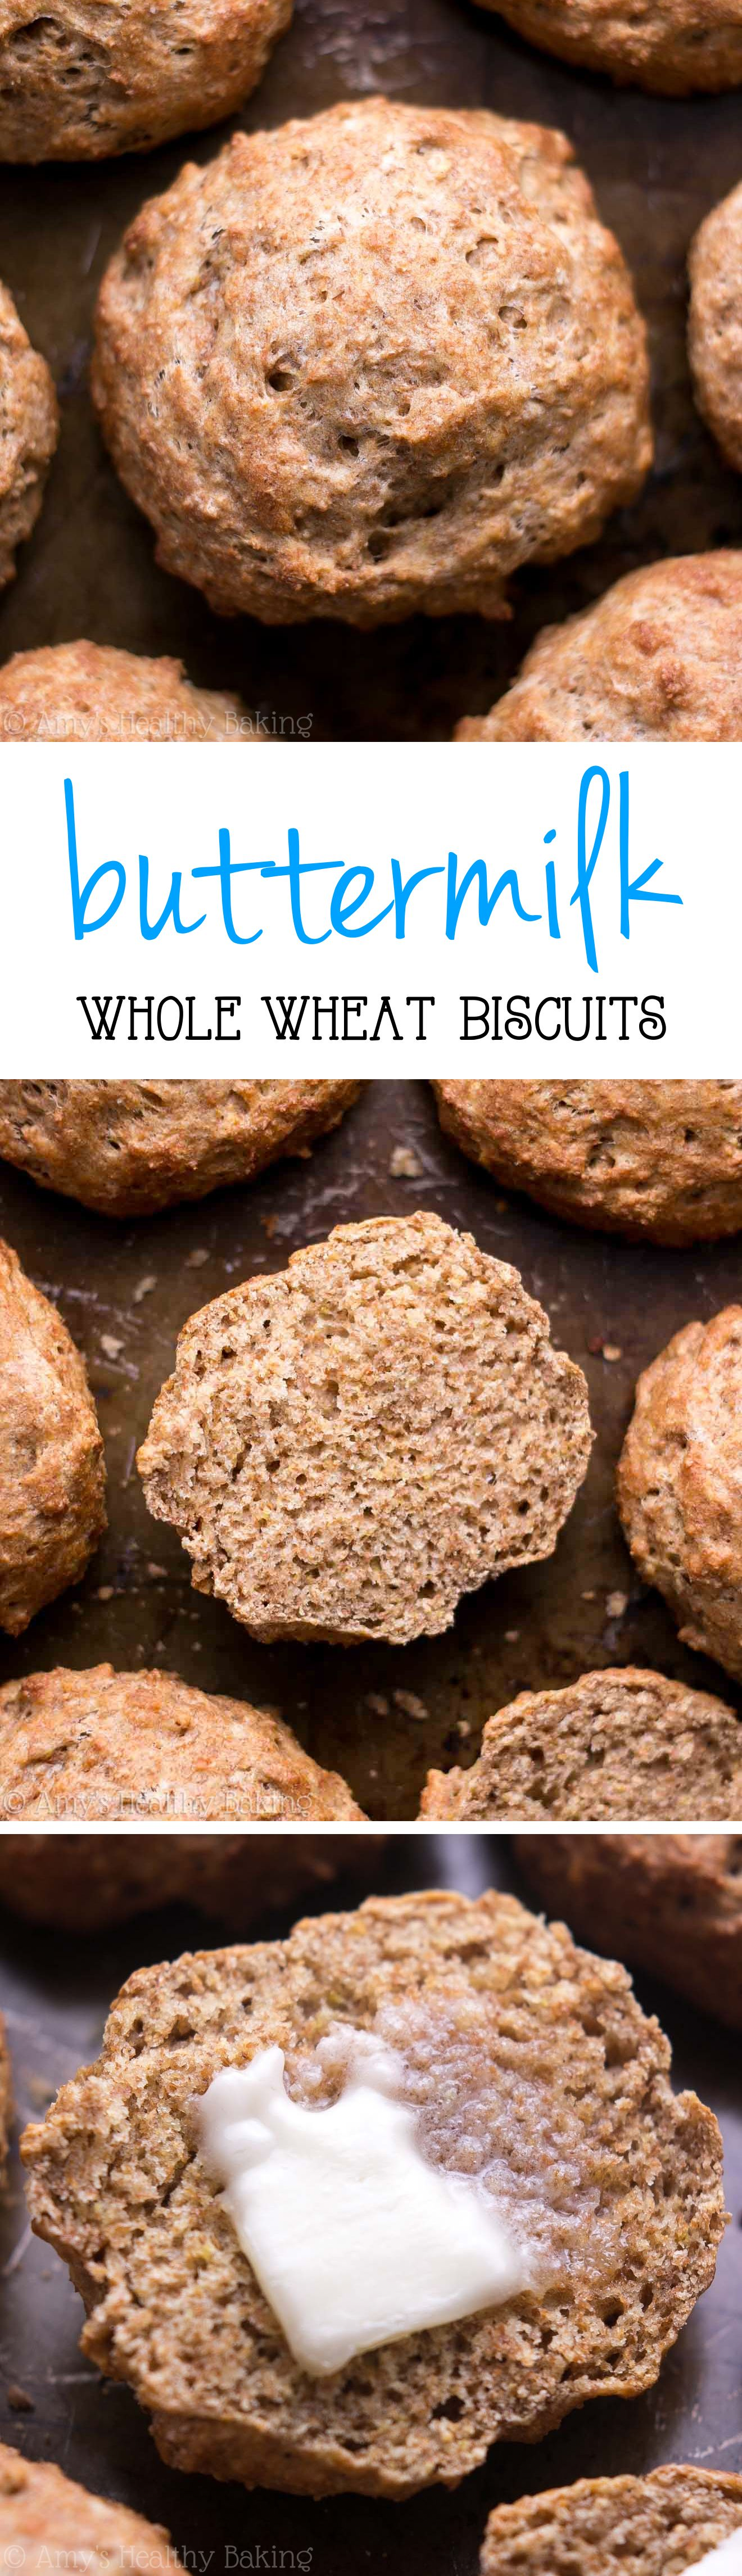 Whole Wheat Buttermilk Biscuits Healthy Baking Whole Wheat Biscuits Baking Recipes